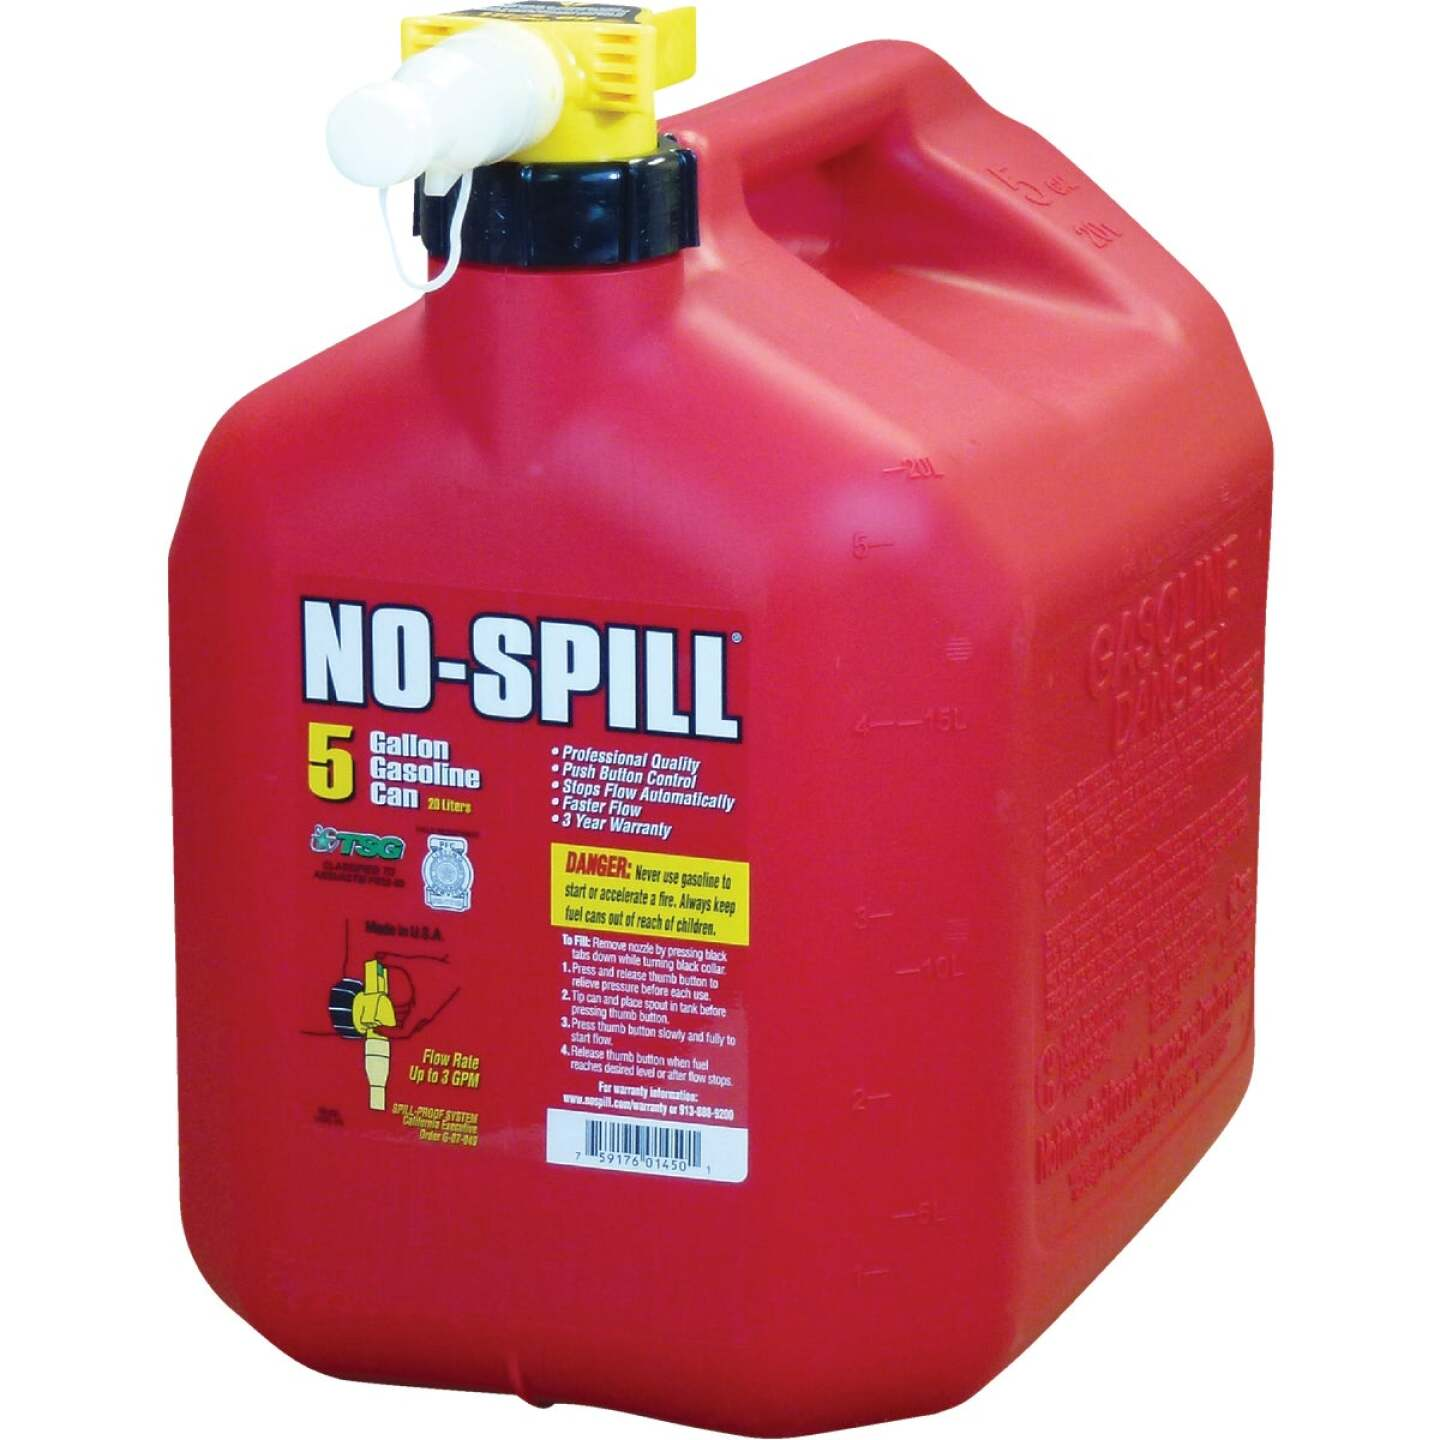 No-Spill 5 Gal. Plastic Gasoline Fuel Can, Red Image 1